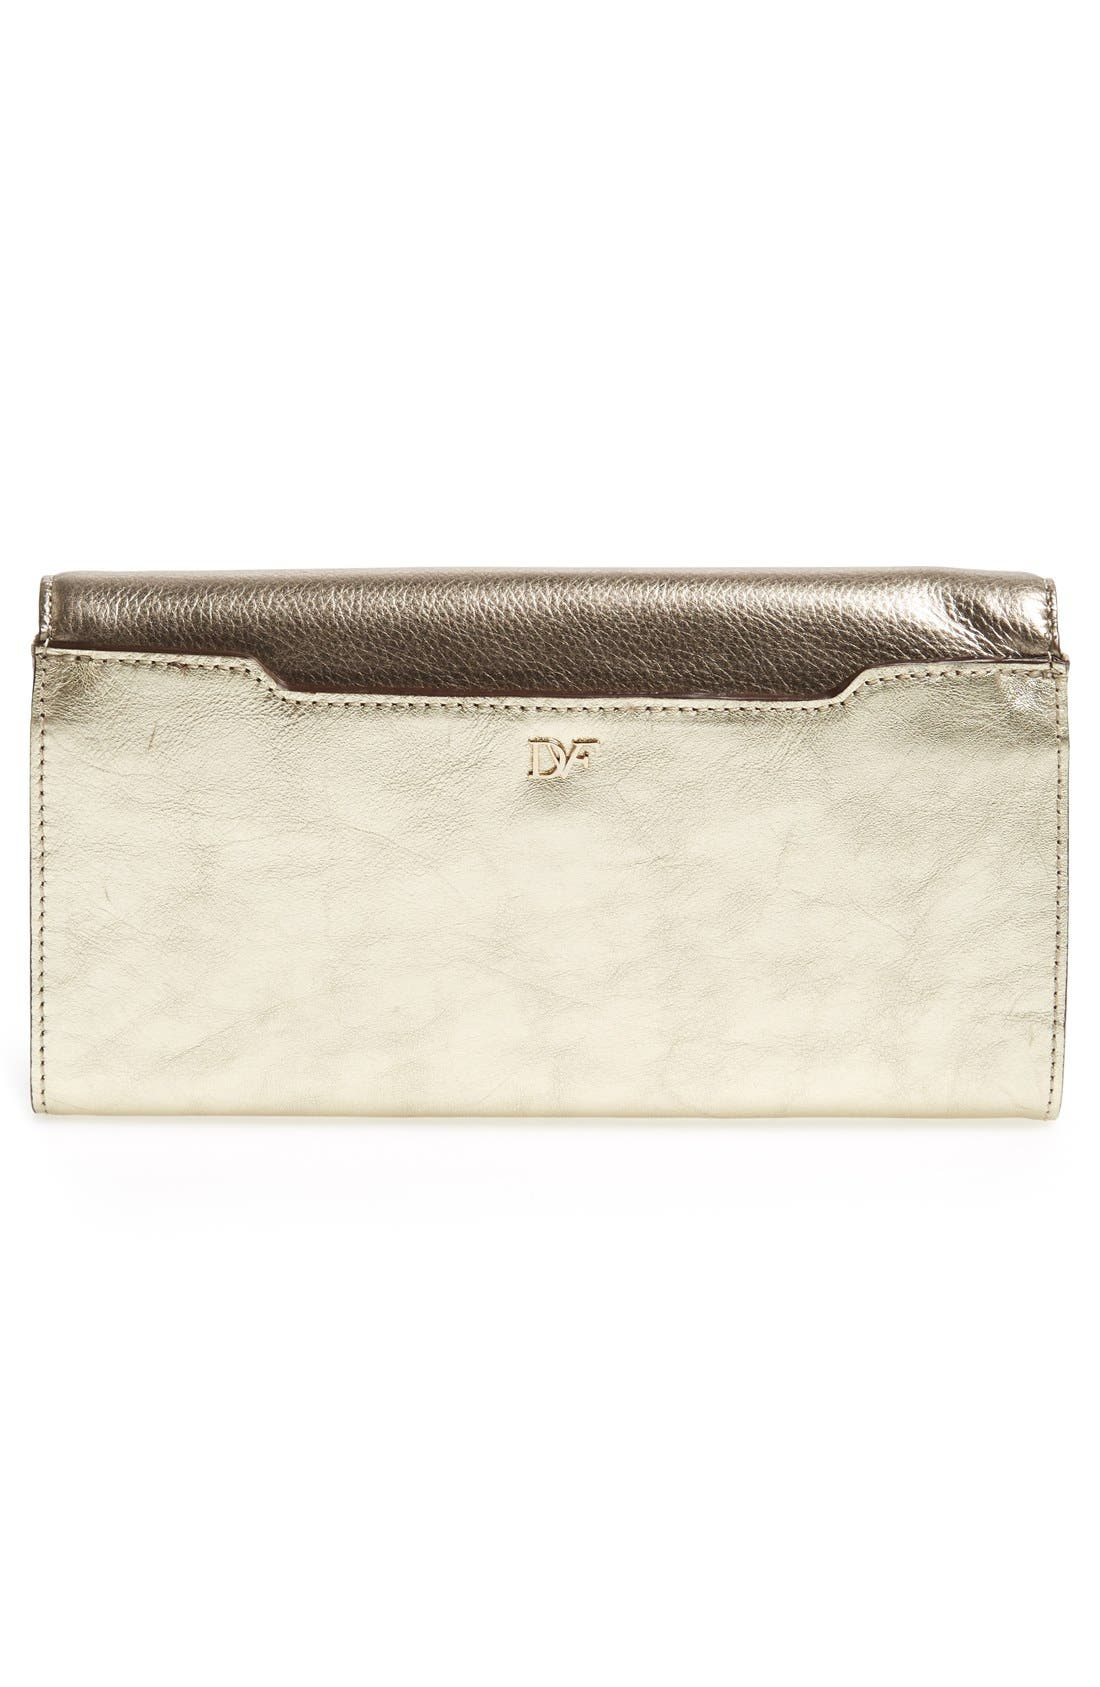 '440 - Mixed Metallic' Envelope Clutch,                             Alternate thumbnail 4, color,                             Tinsel/ Light Gold/ Pewter